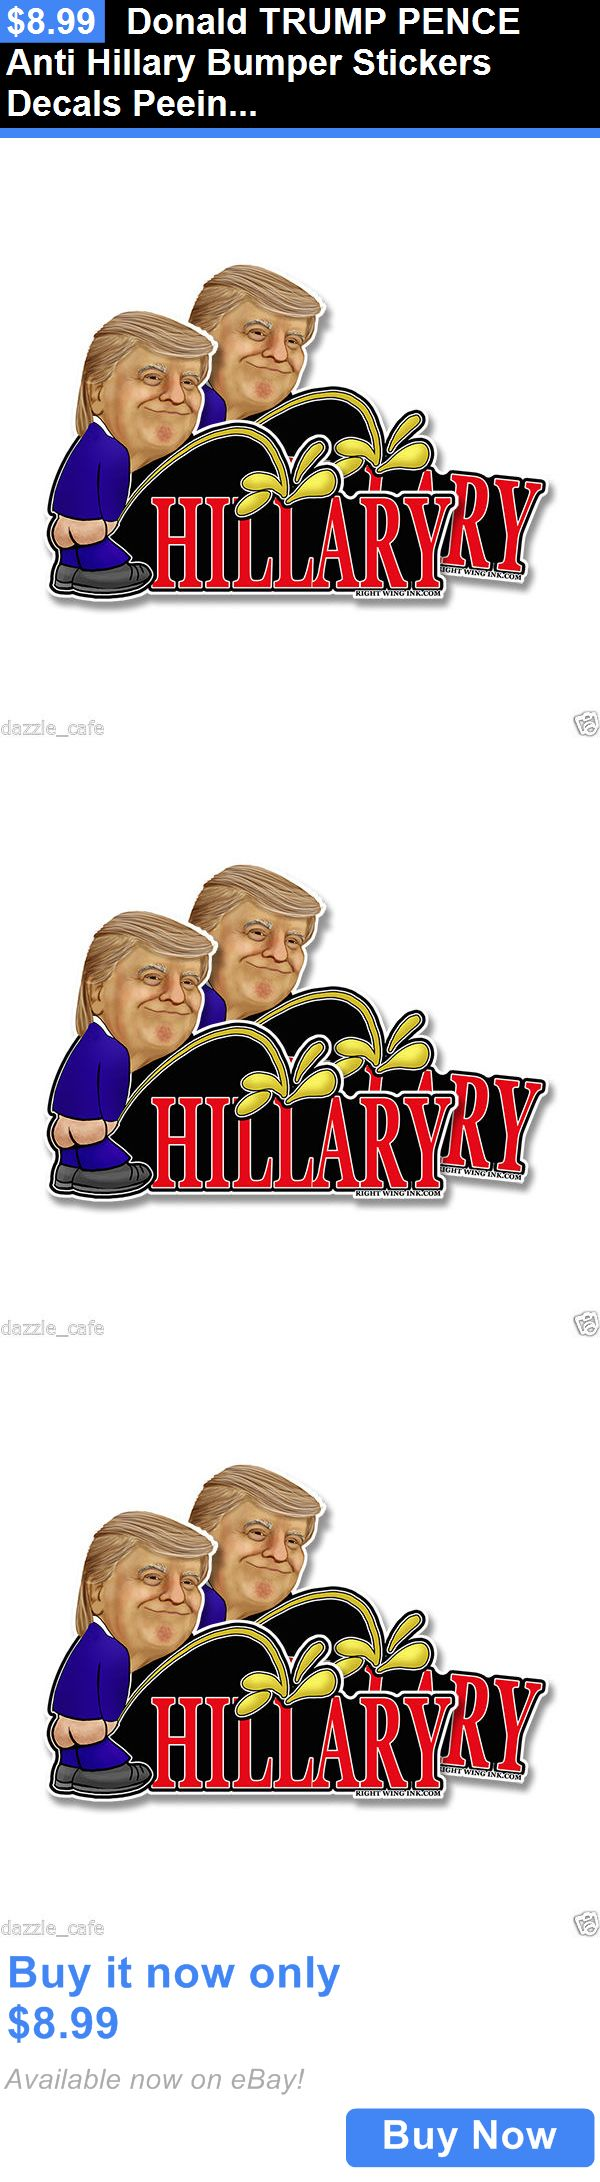 donald trump: Donald Trump Pence Anti Hillary Bumper Stickers Decals Peeing (10 Pack) 7X5 BUY IT NOW ONLY: $8.99